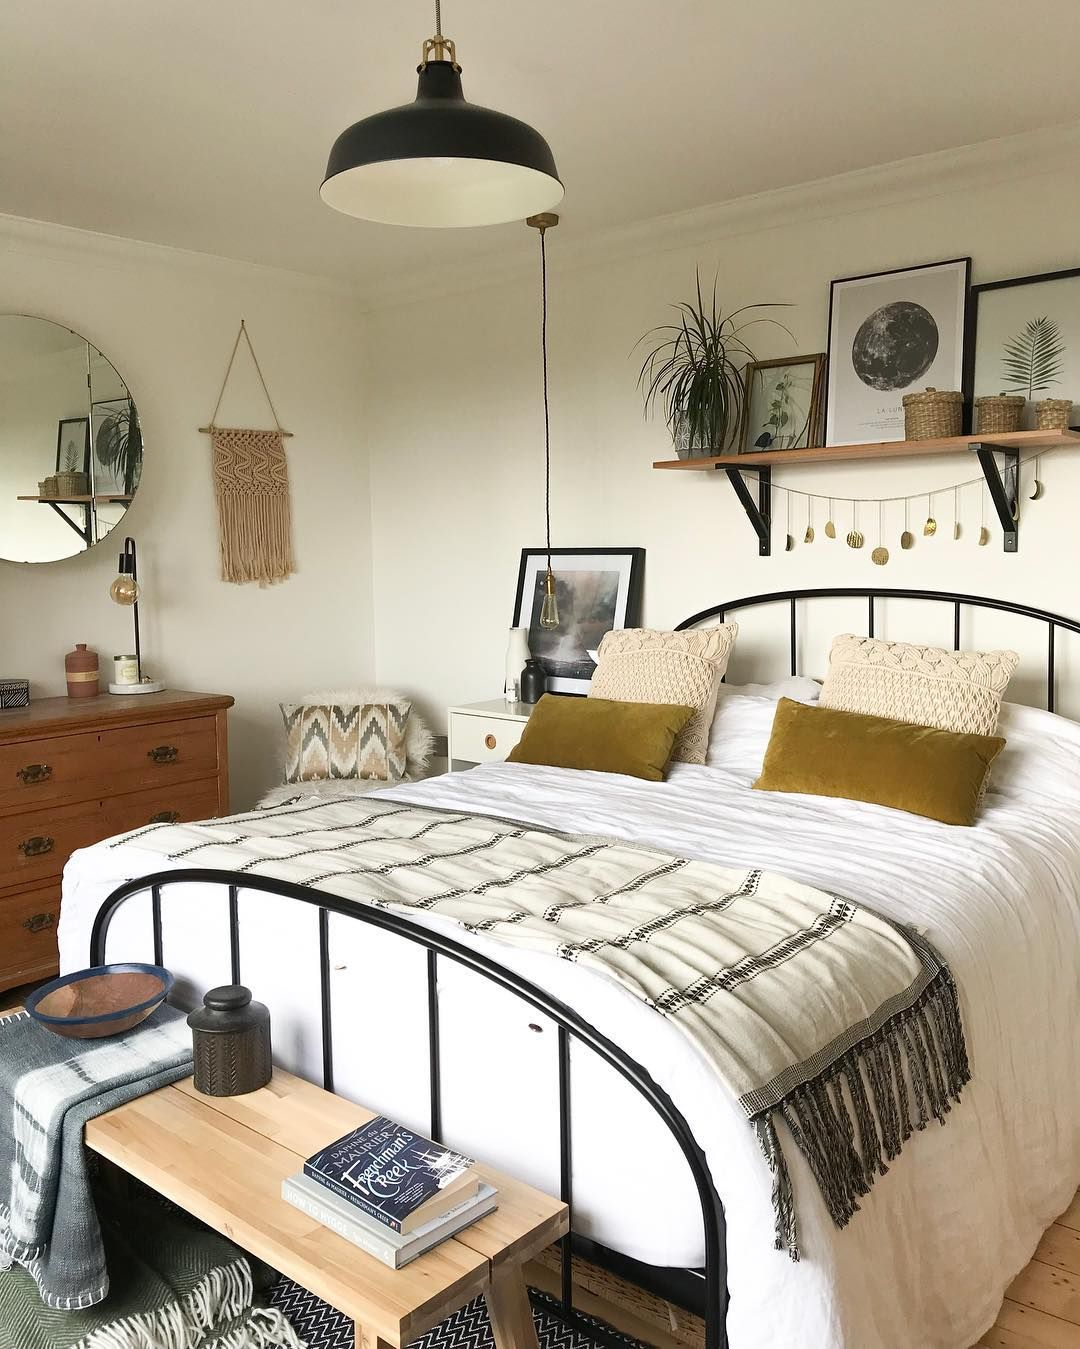 4 Common Bedroom Design Mistakes & How to Avoid Them